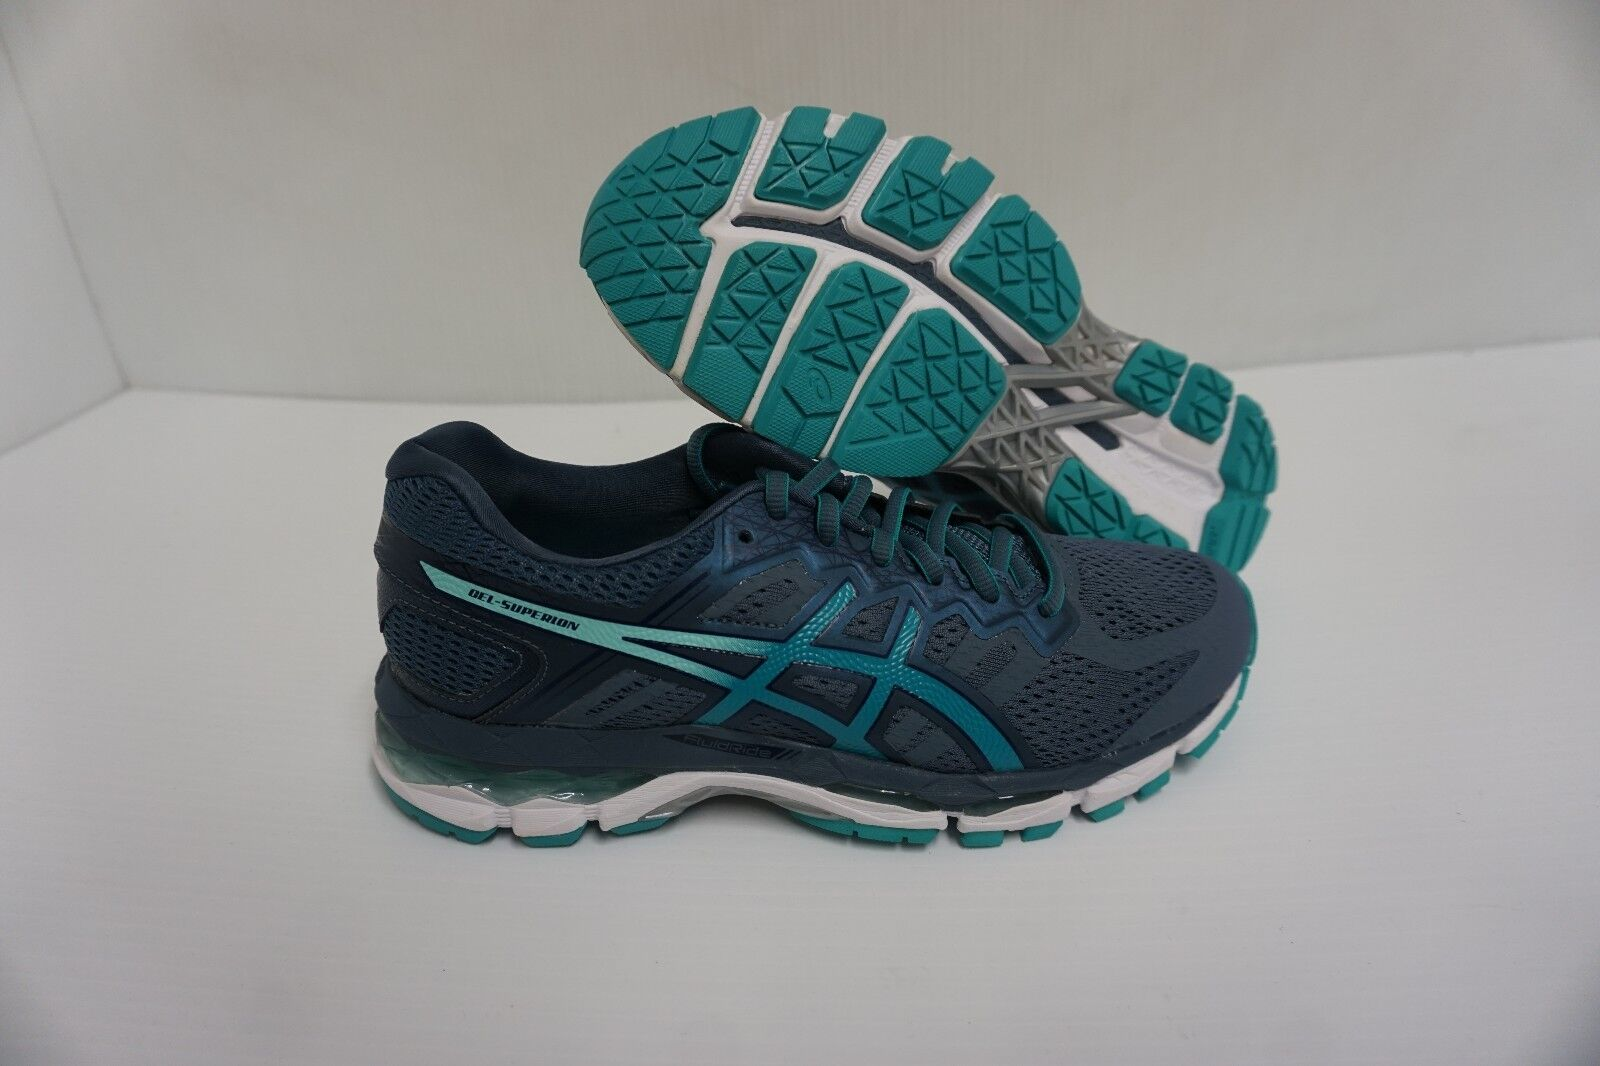 Asics women's gel-superion smoke blue running shoes size 6.5 us new Great discount